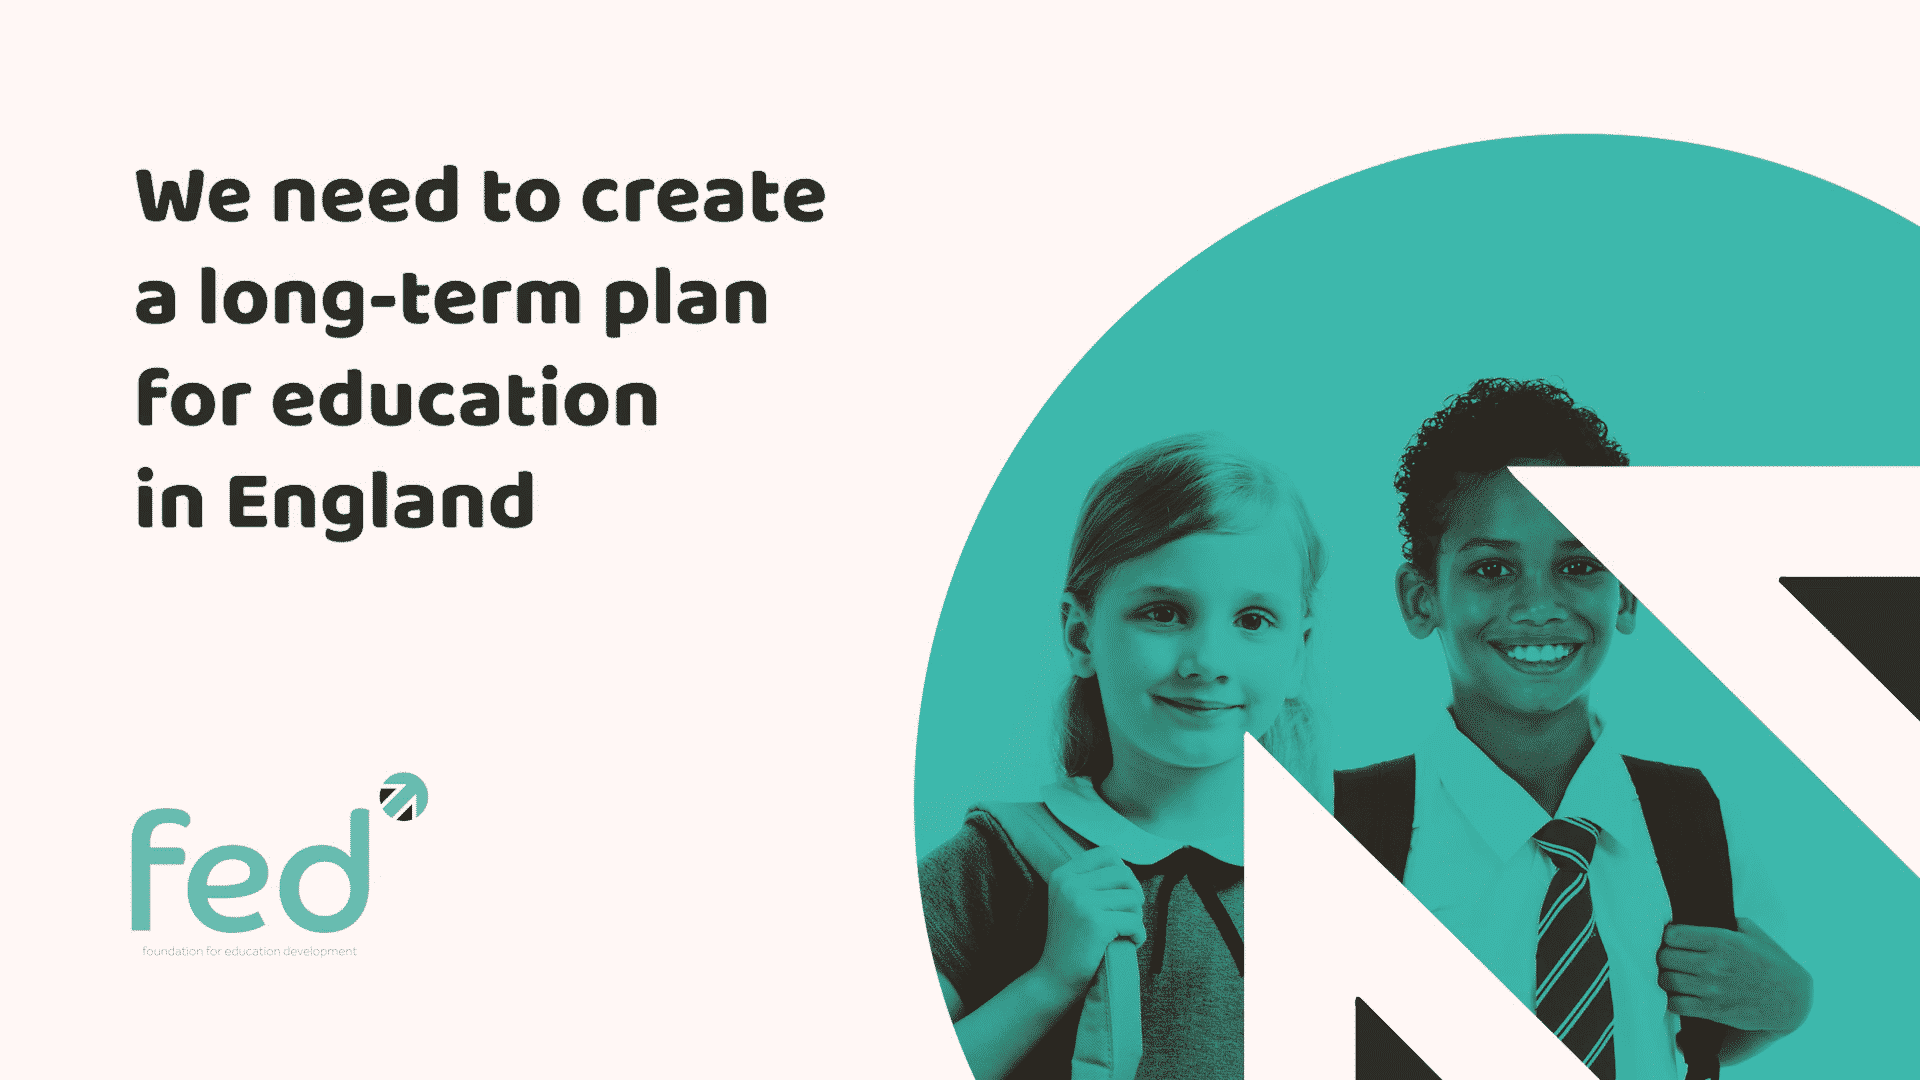 We need to create a long term plan for education in England